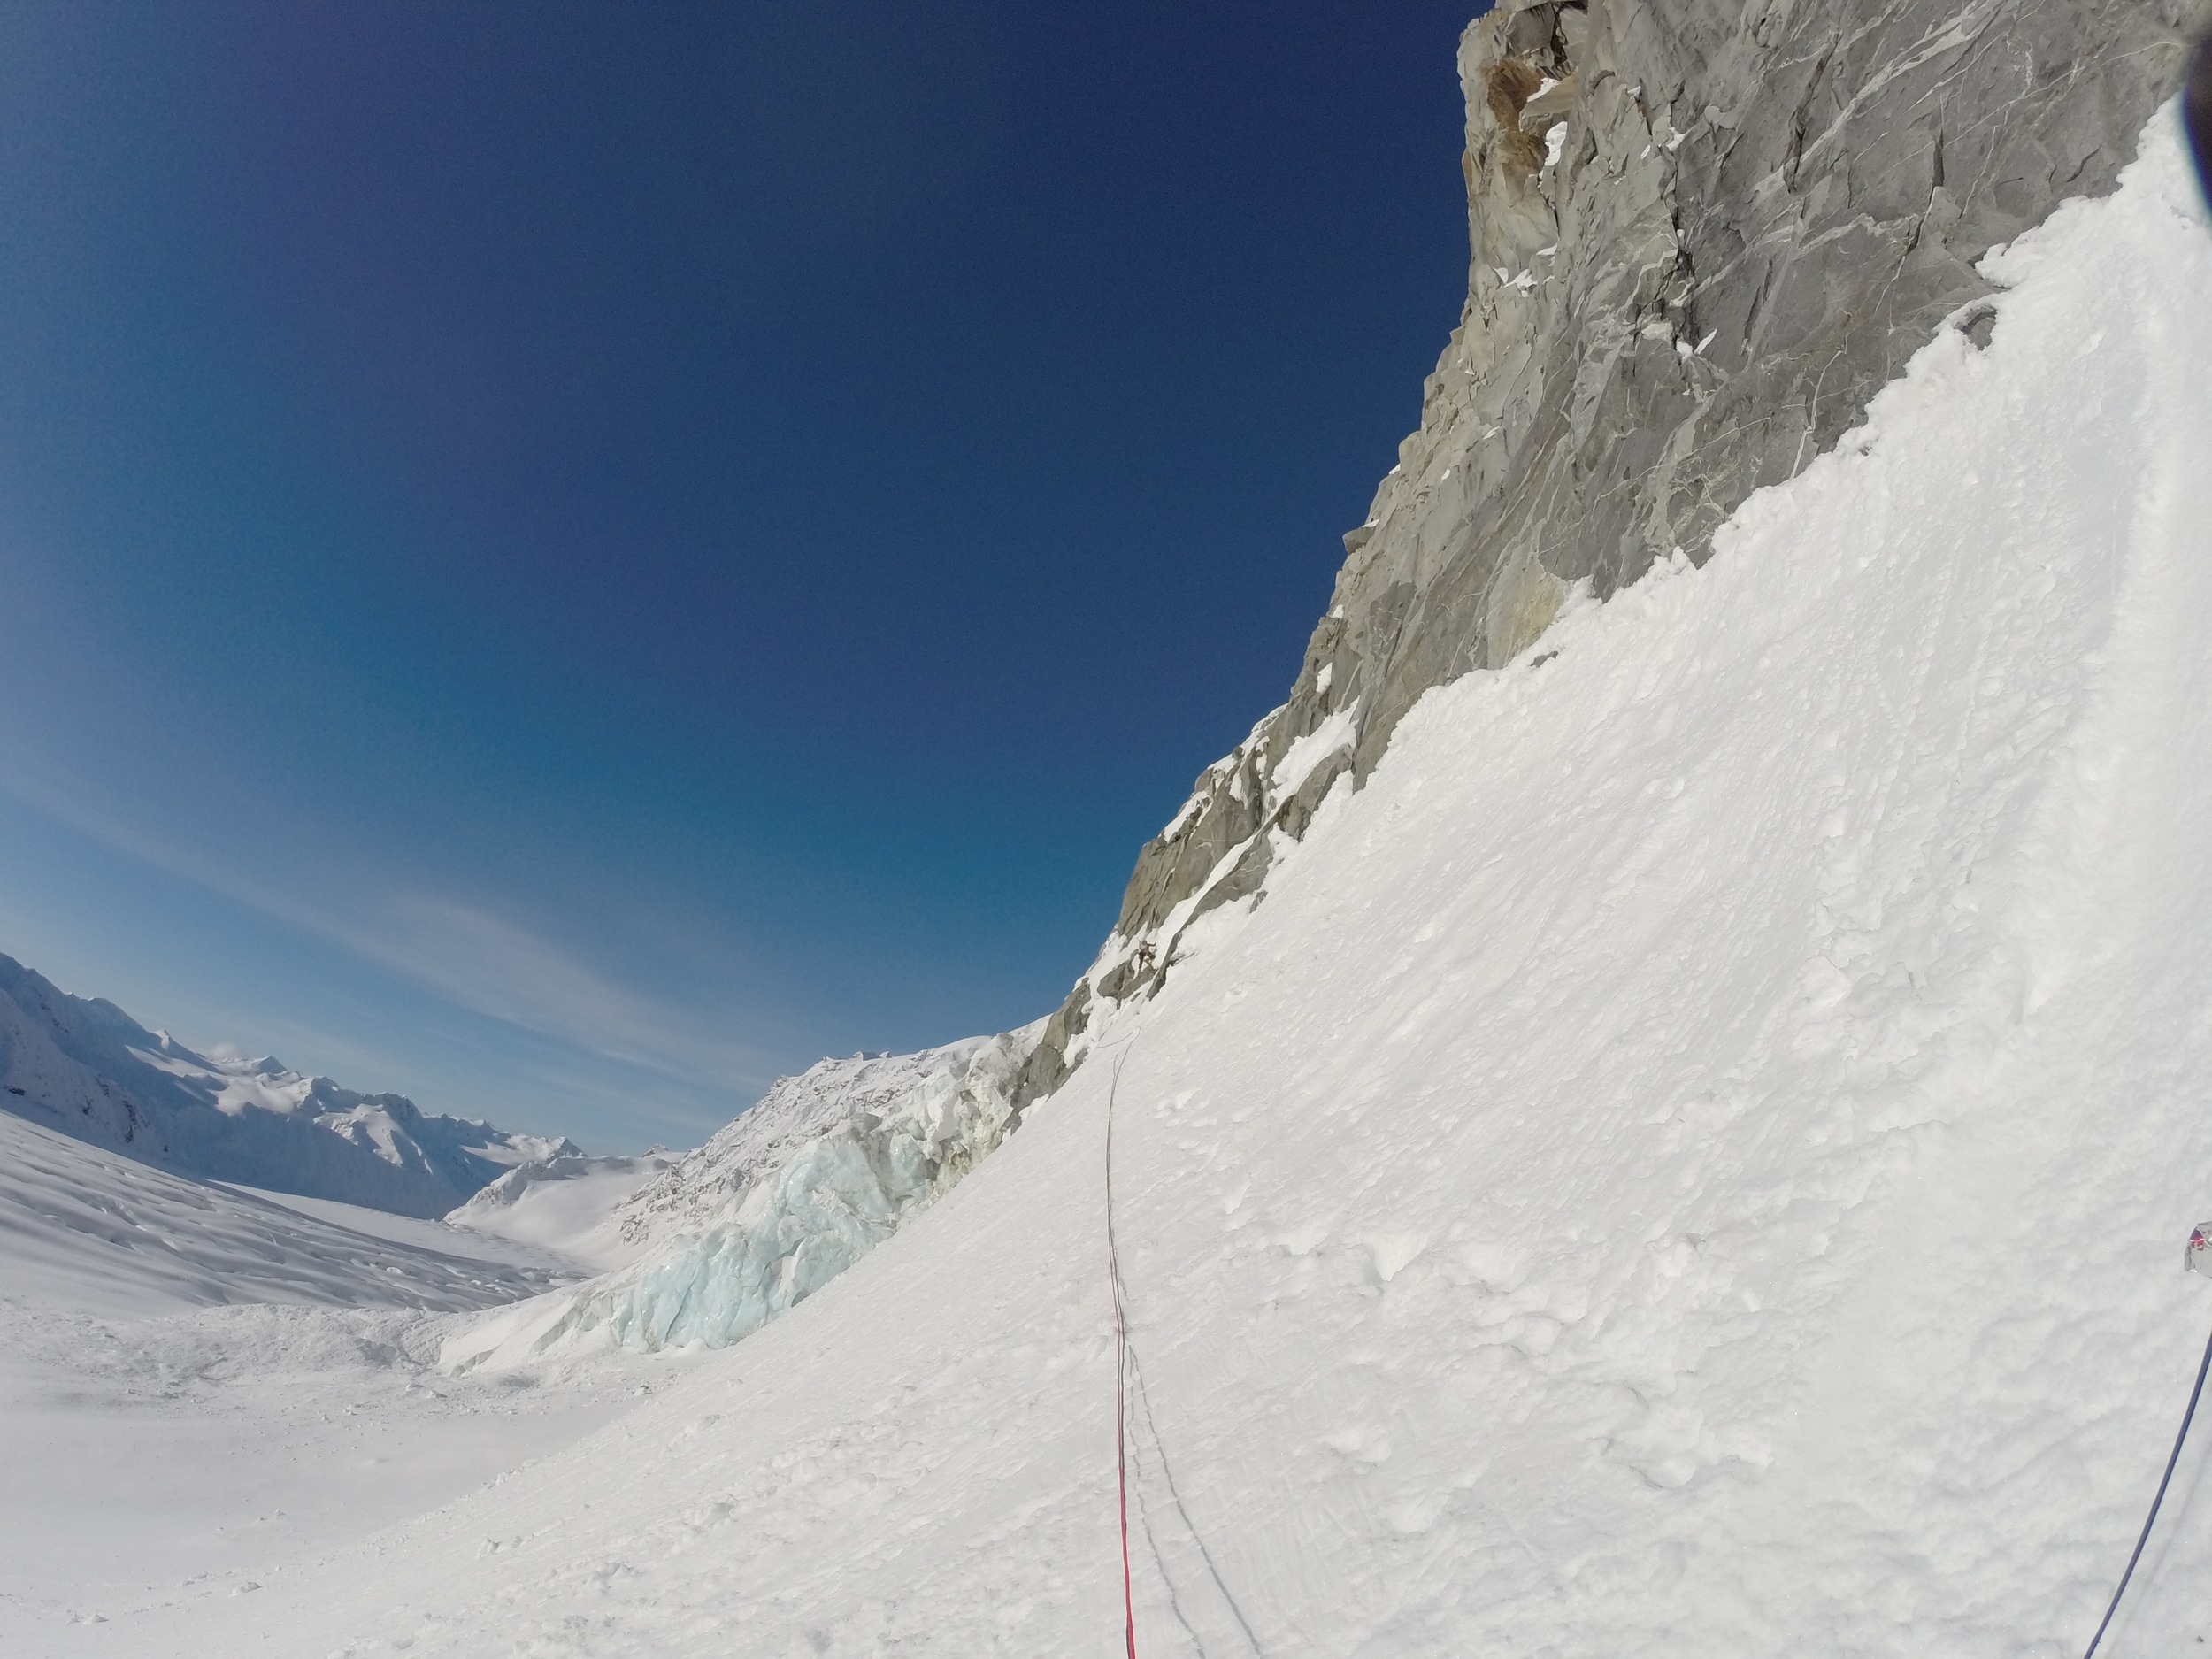 i'm really small but you can see me starting up the south facing headwall.